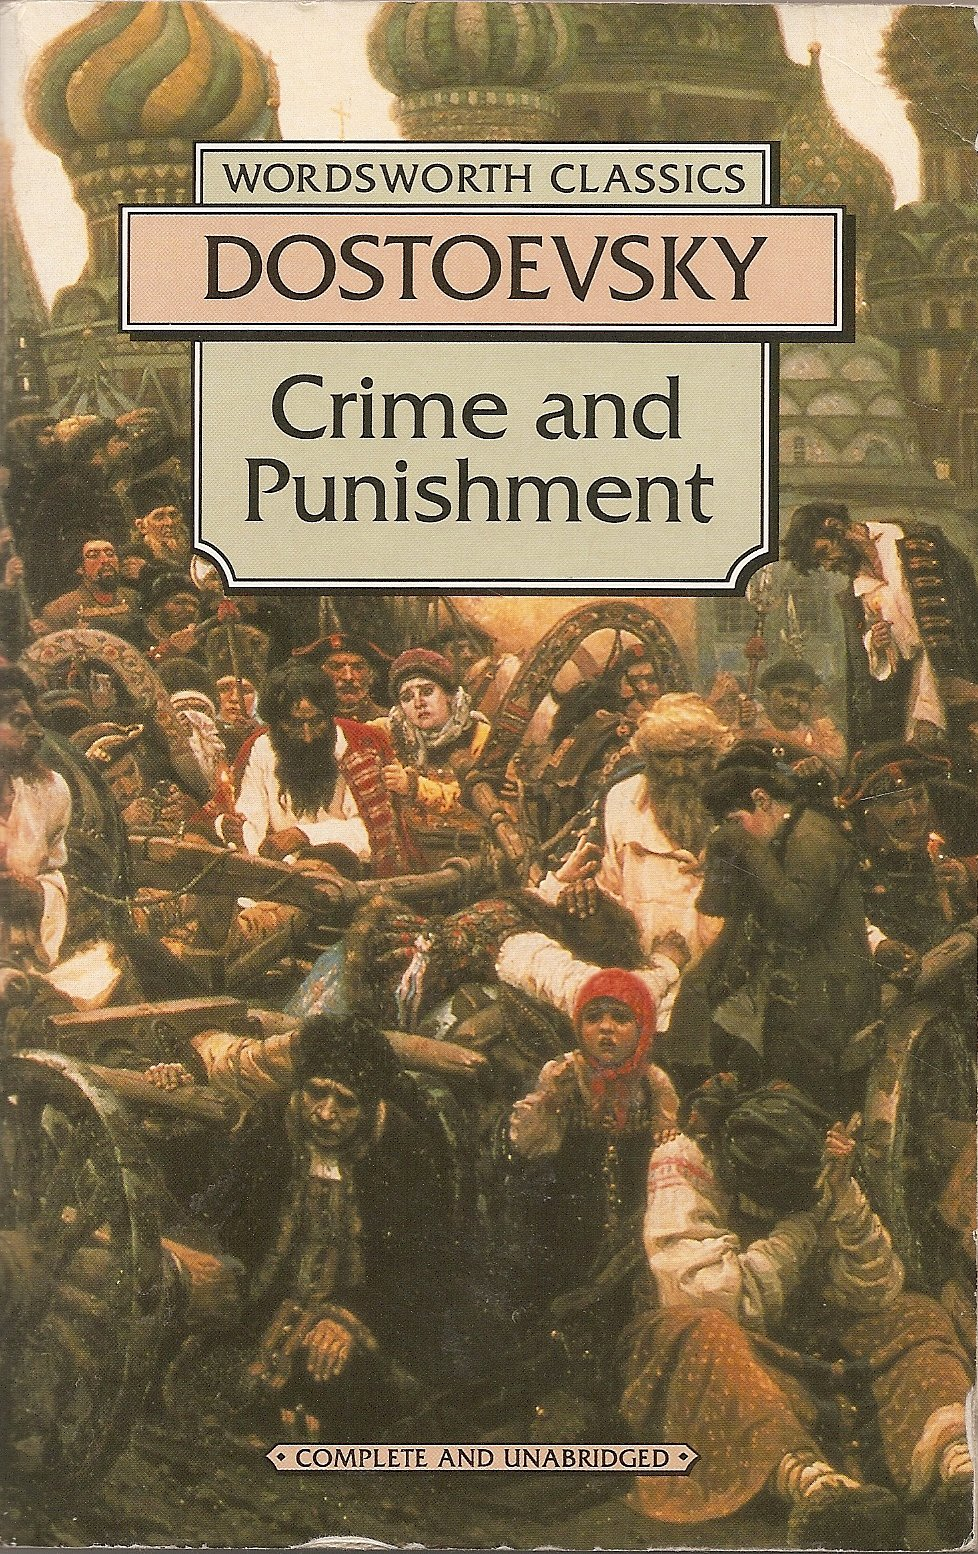 crime and punishment by dostoyevsky analysis Complete summary of fyodor dostoevsky's crime and punishment enotes plot summaries cover all the significant action of crime and punishment.